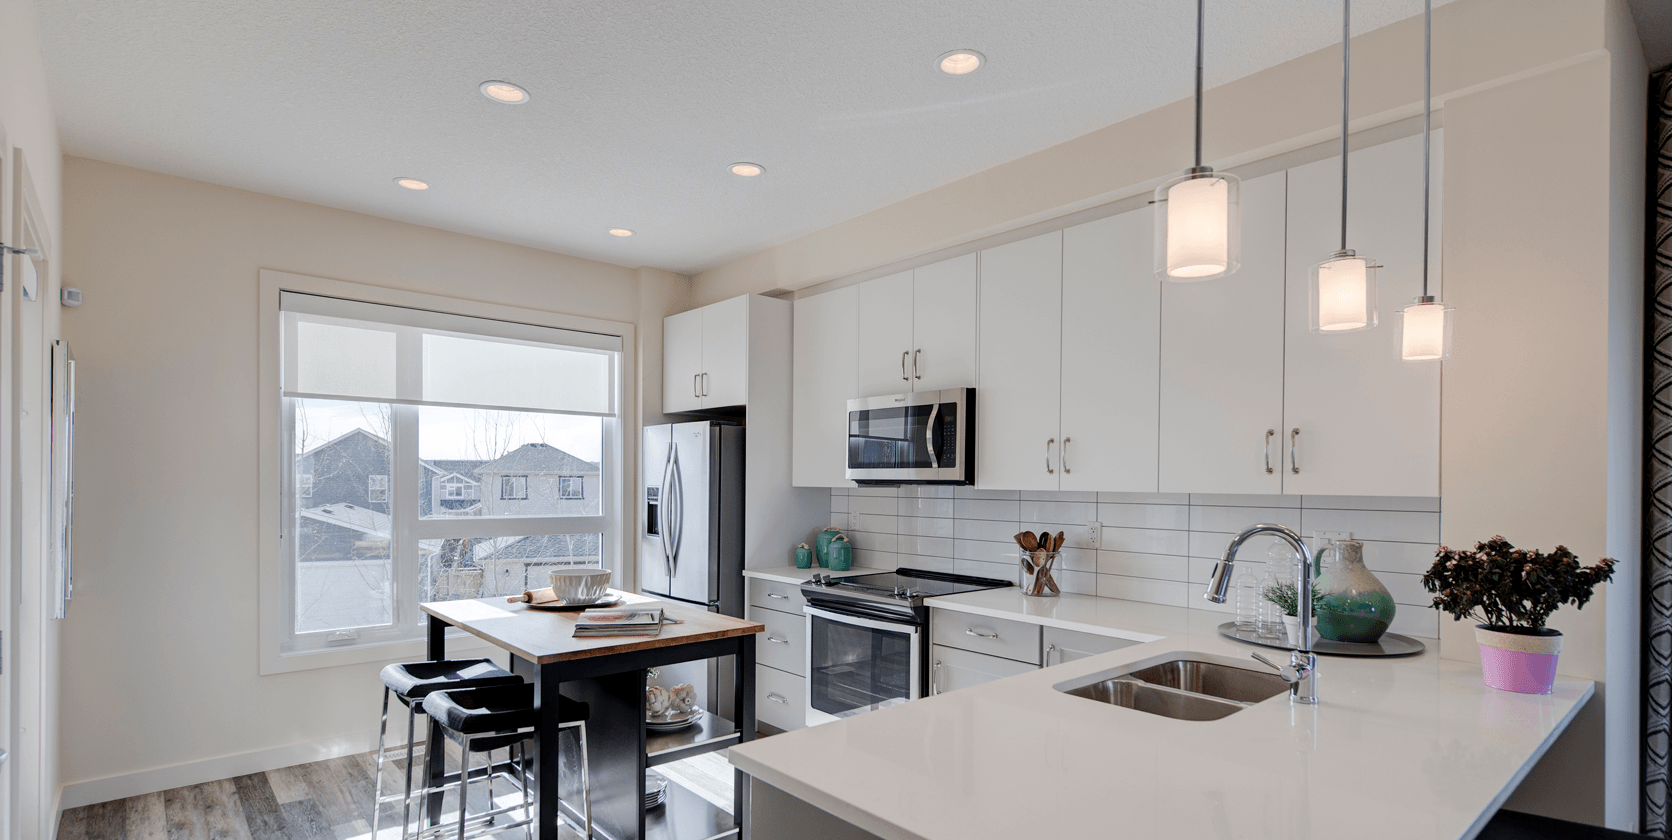 The Best Townhome Designs for Multi-Generational Living Rosewood18.o Kitchen Featured Image